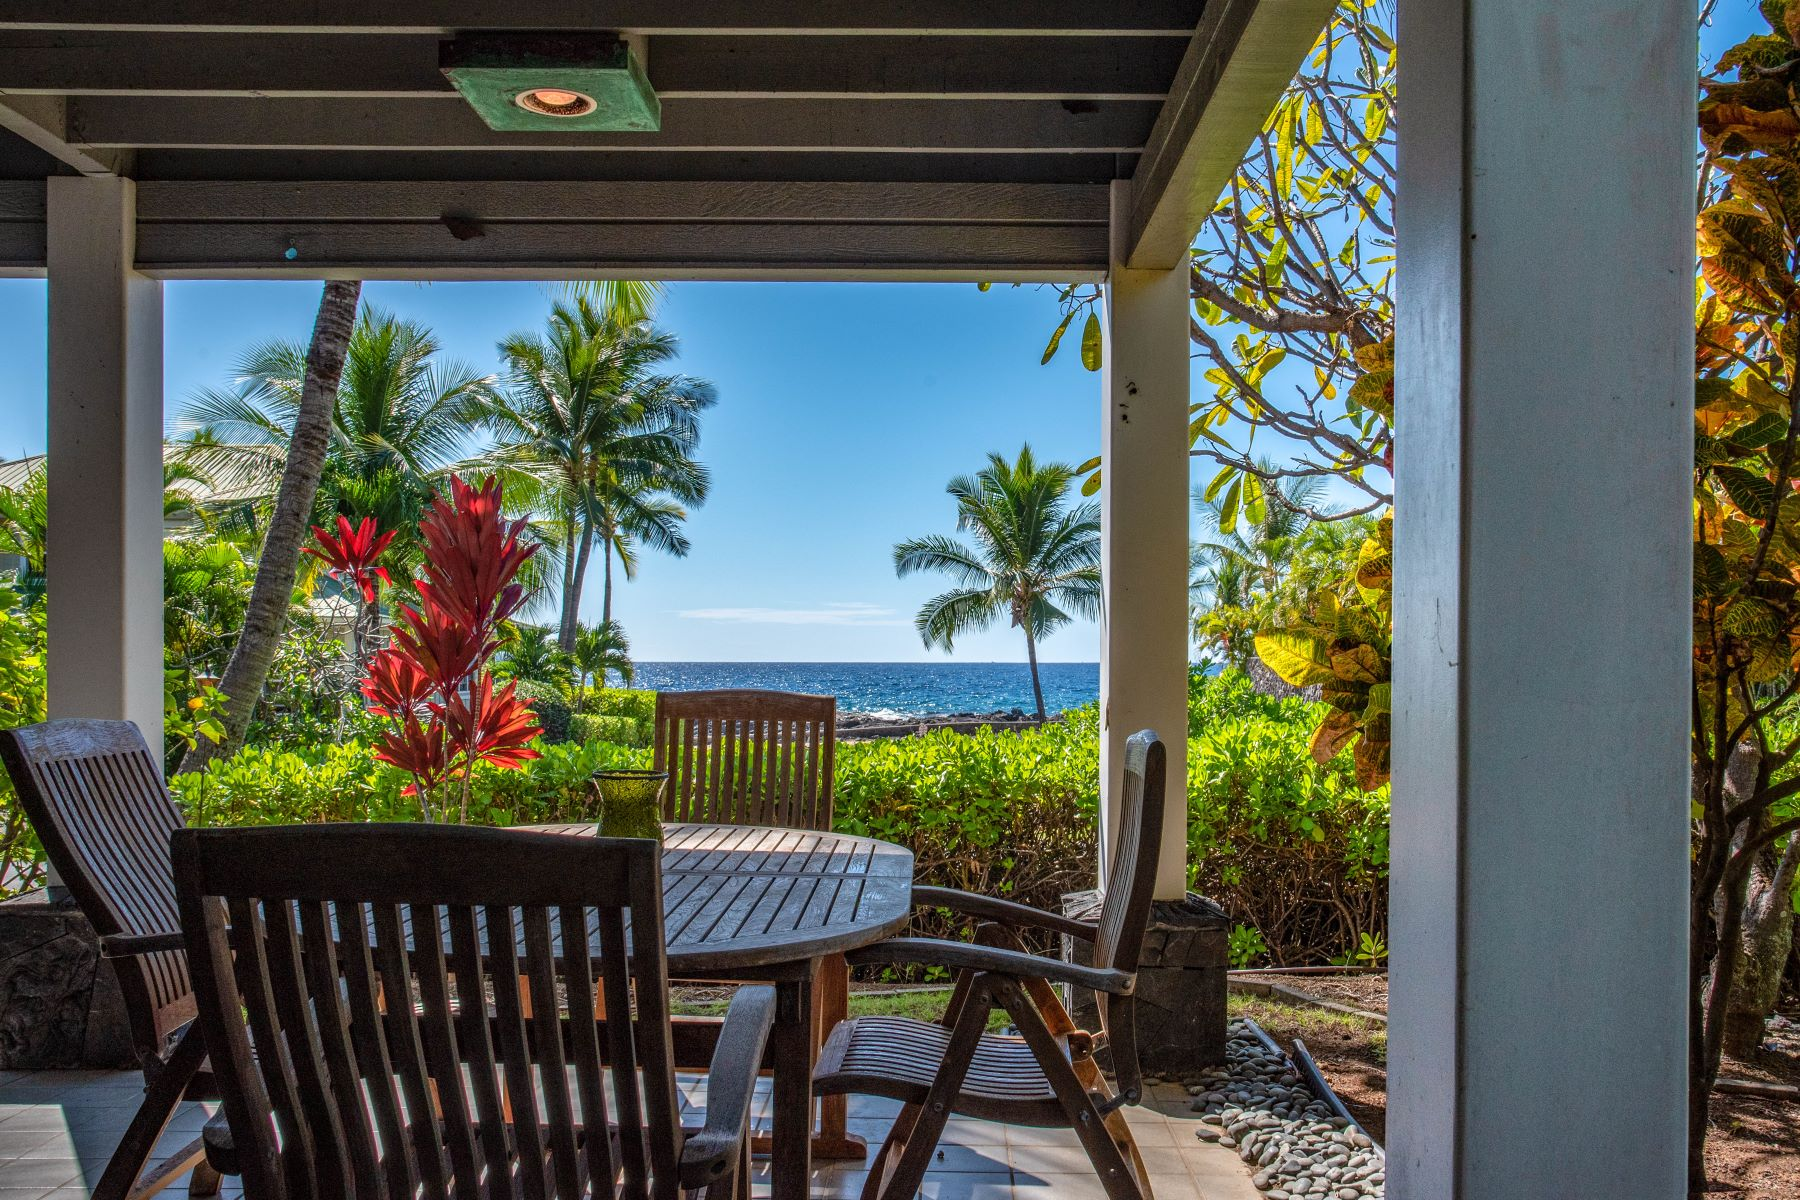 Single Family Homes for Sale at KONA BAY ESTATES: TWO LEGAL HOMES 75-5491 Kona Bay Drive Kailua-Kona, Hawaii 96740 United States